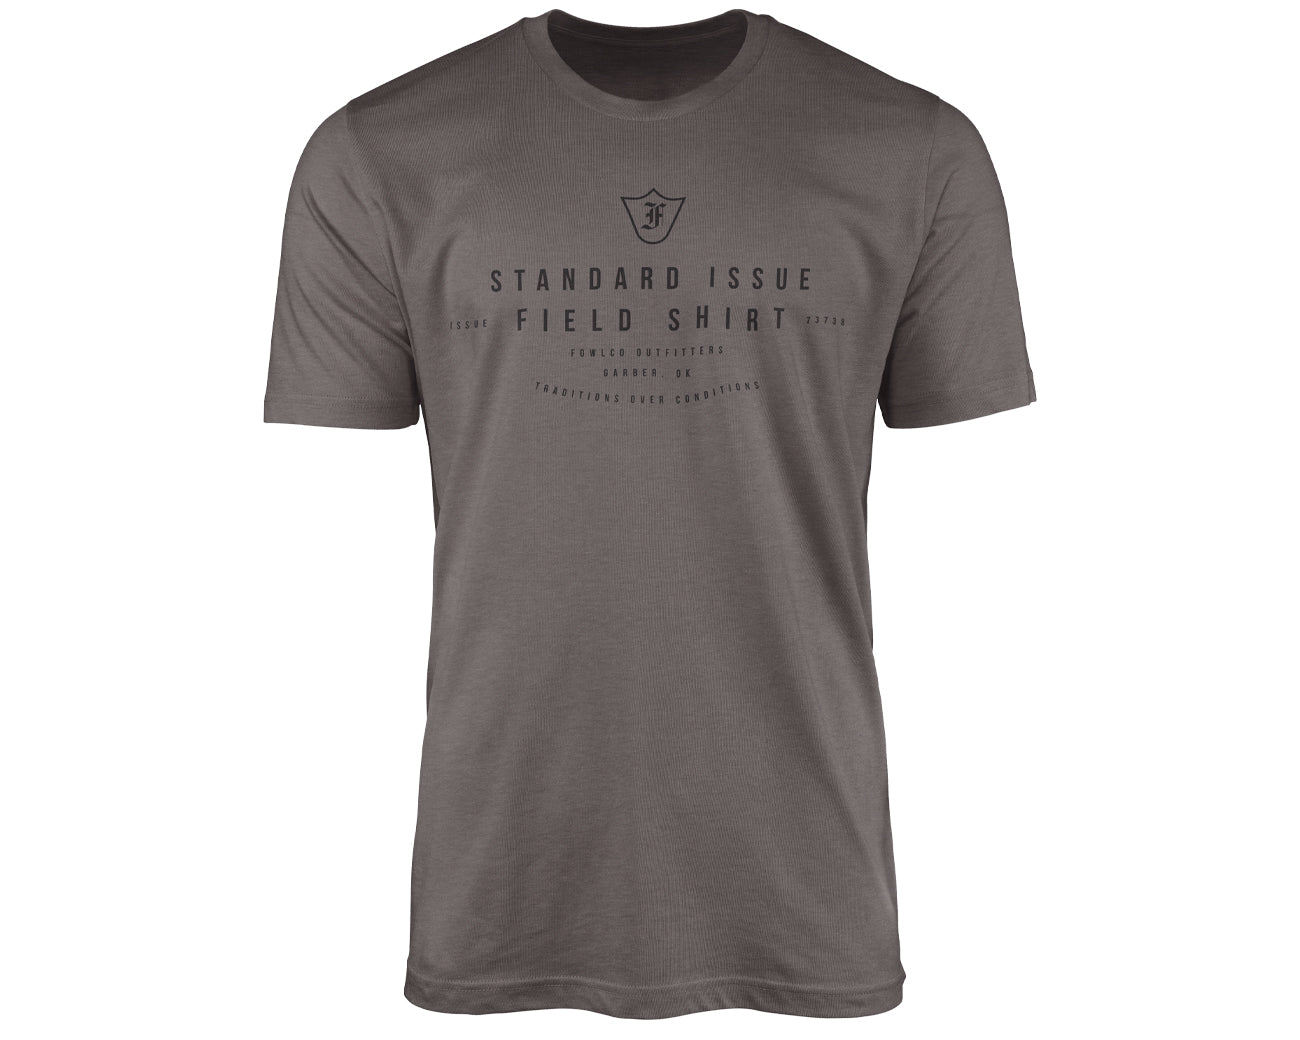 STANDARD ISSUE SS FIELD T-SHIRT